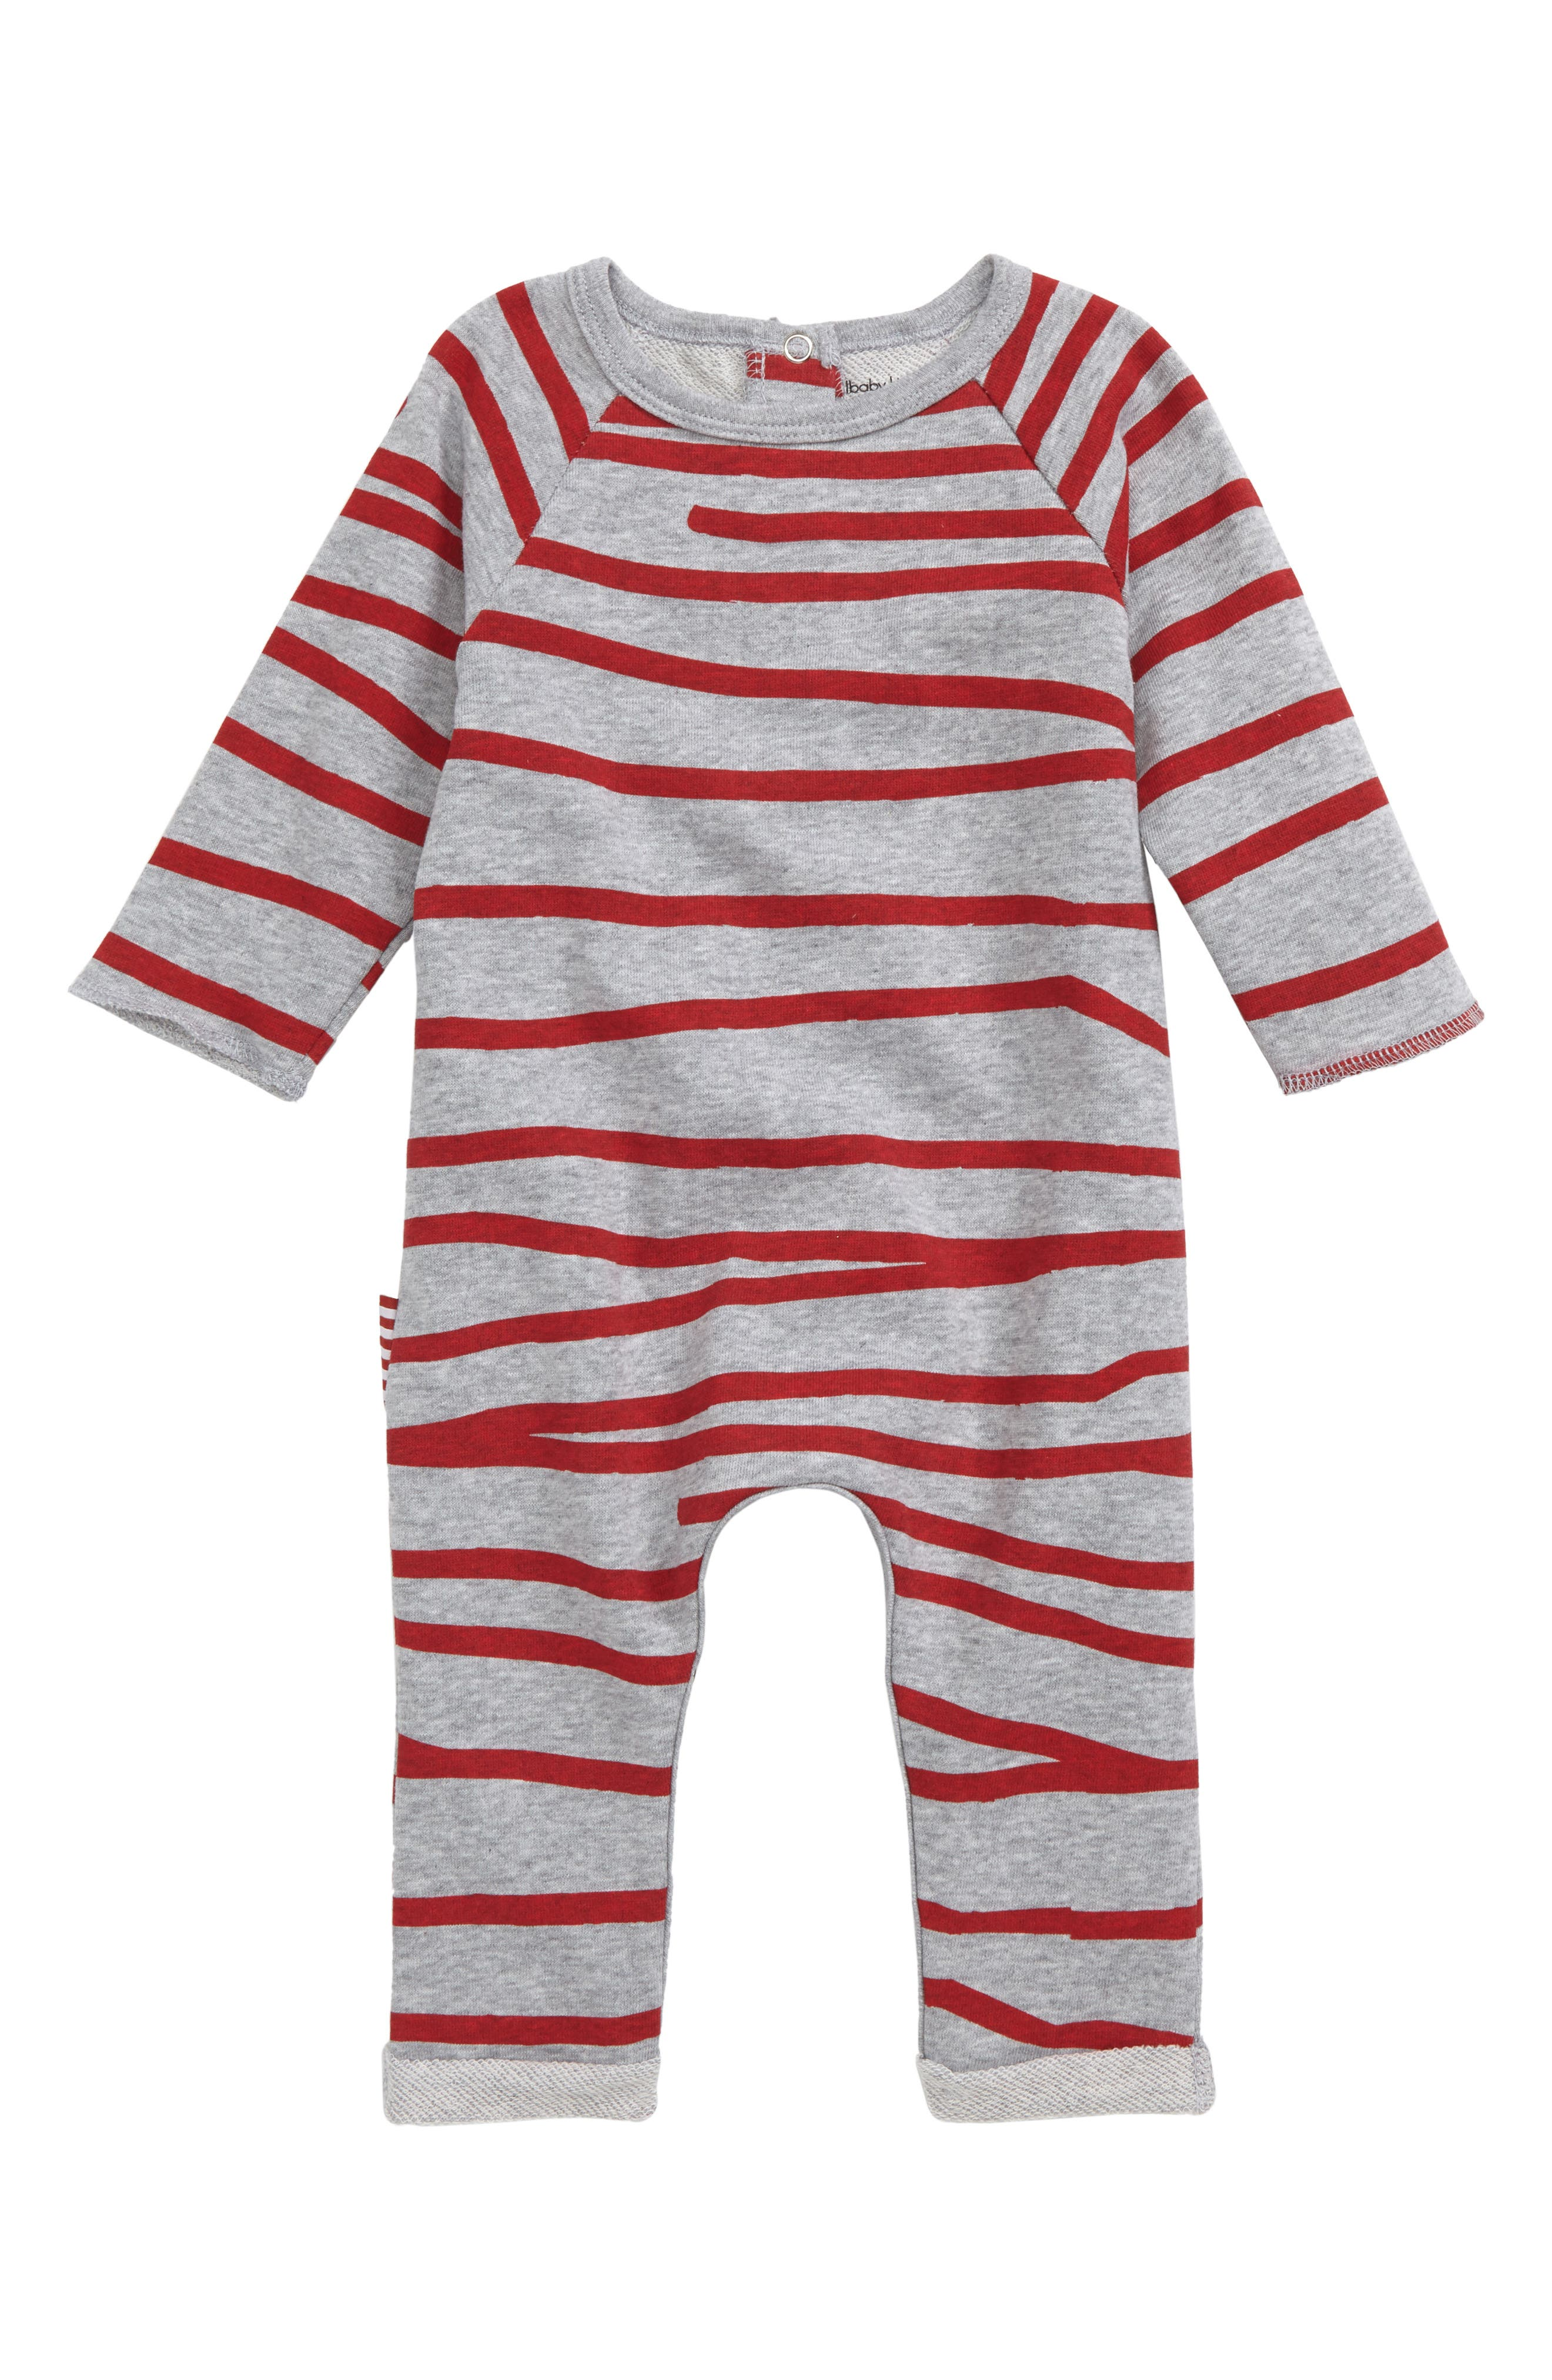 Stripe Romper,                             Main thumbnail 1, color,                             Grey Marle/ Red